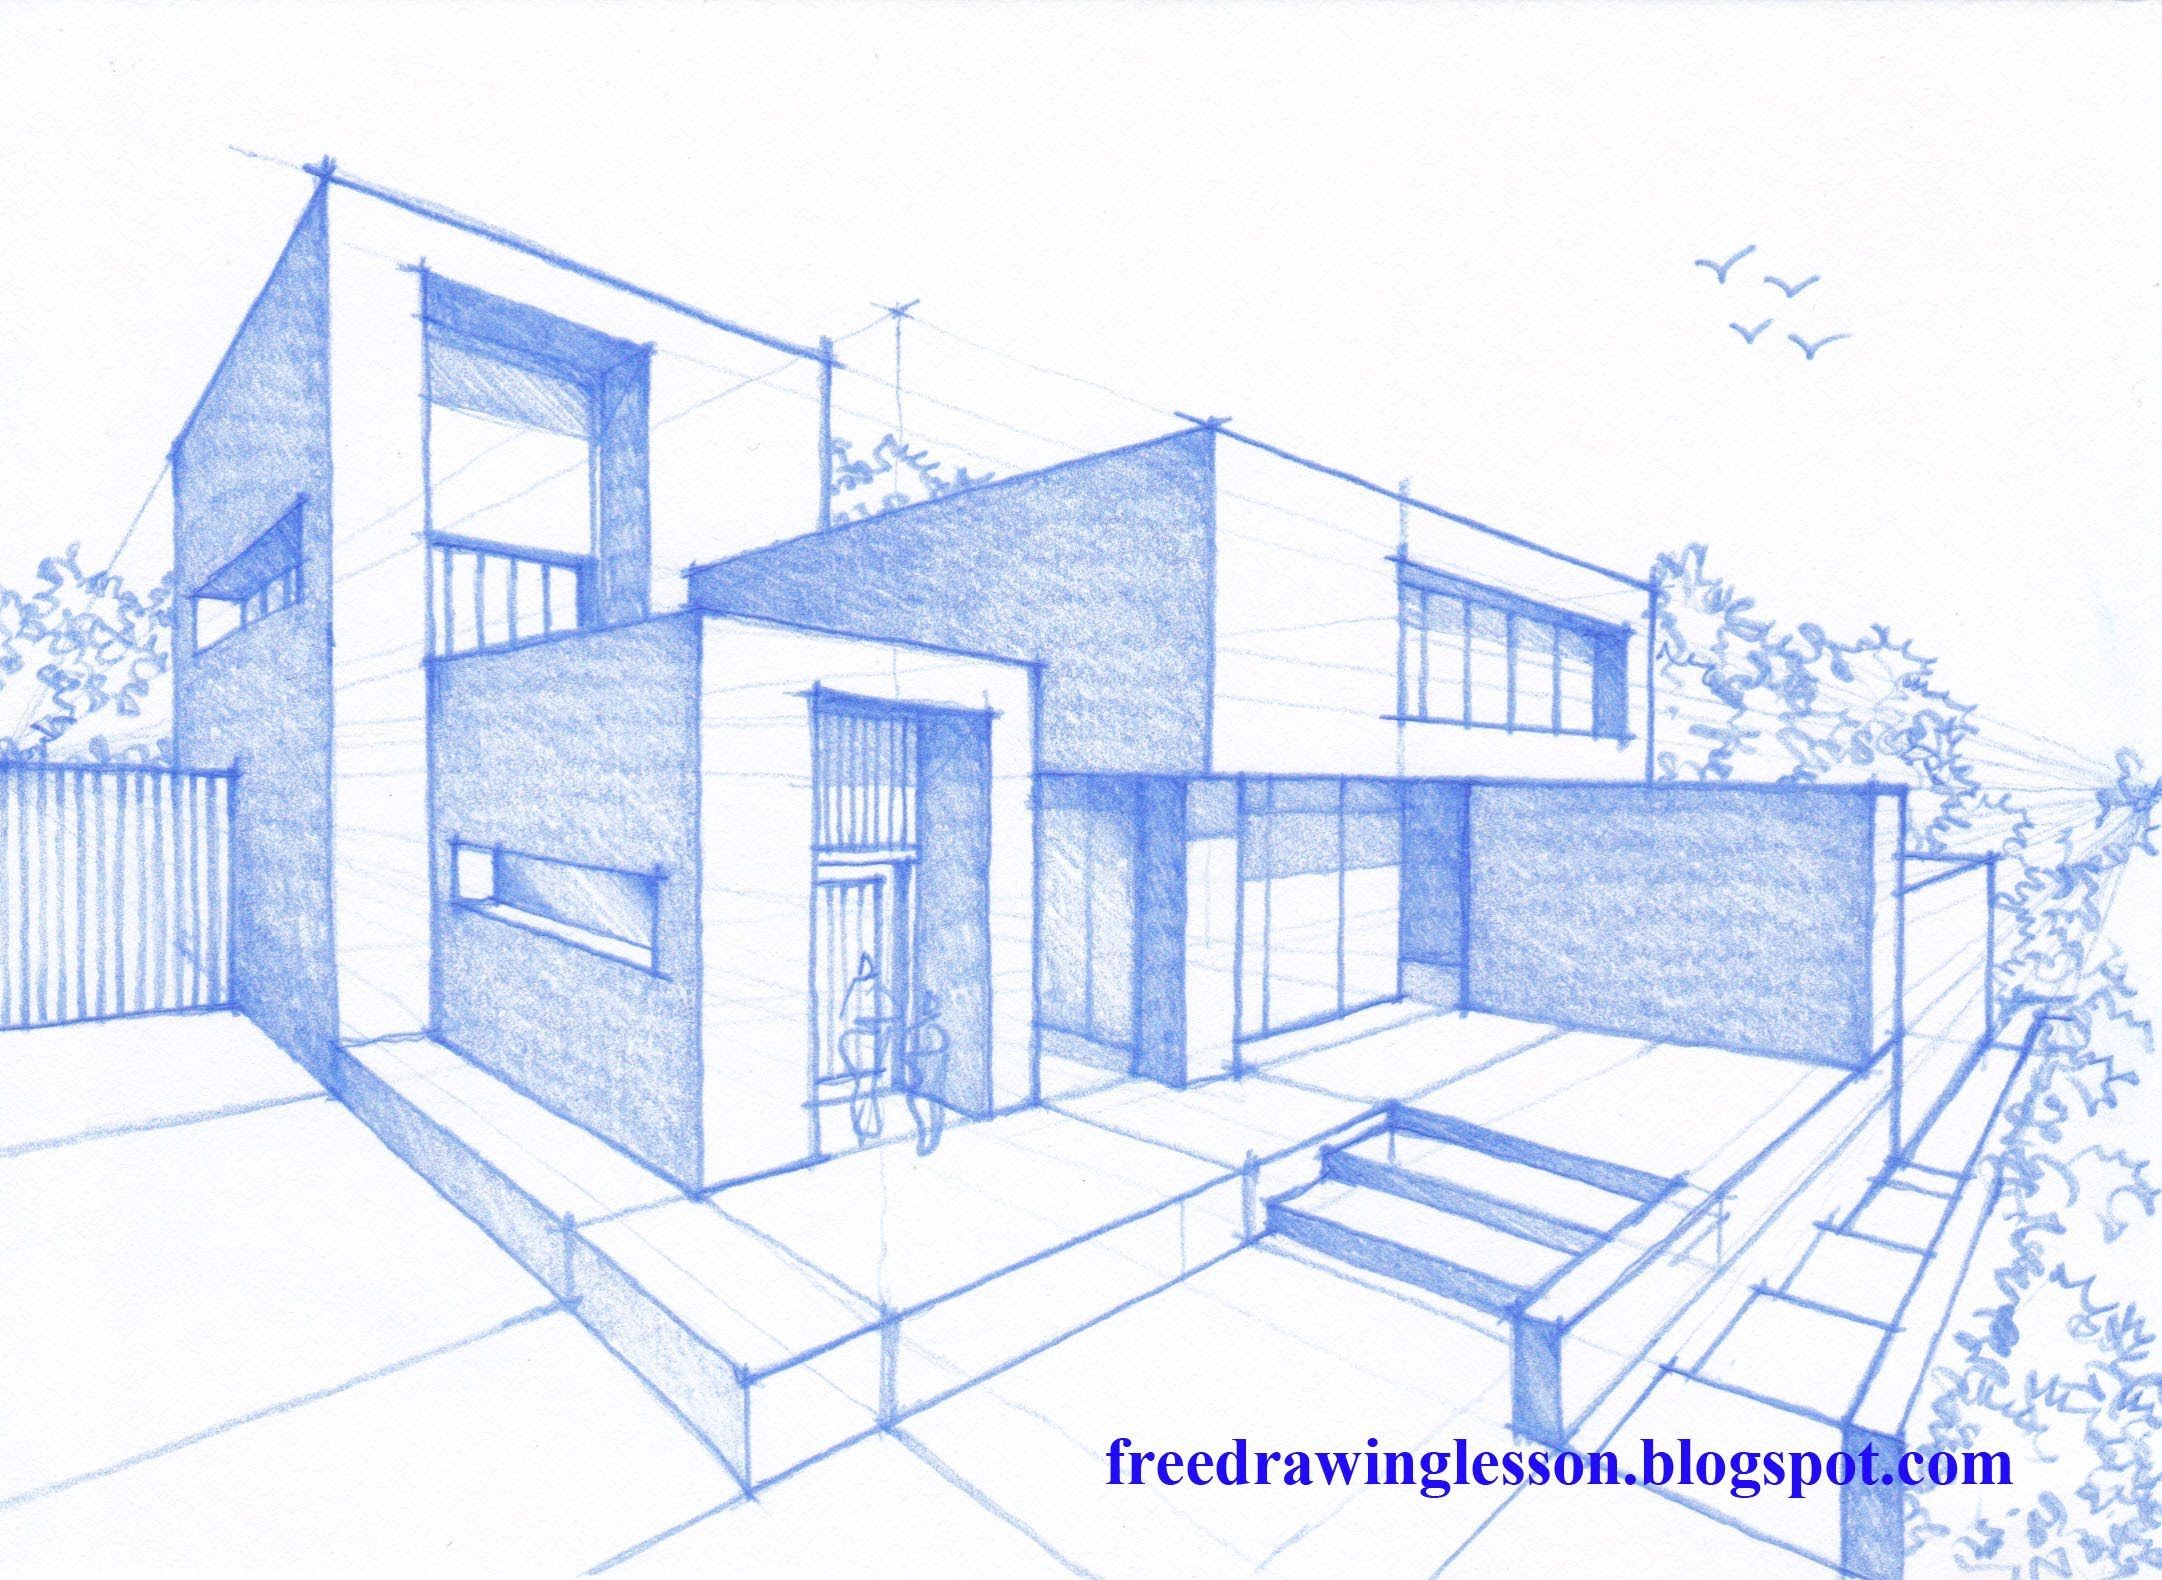 Let us try to draw this house design by following the step for Architecture house drawing